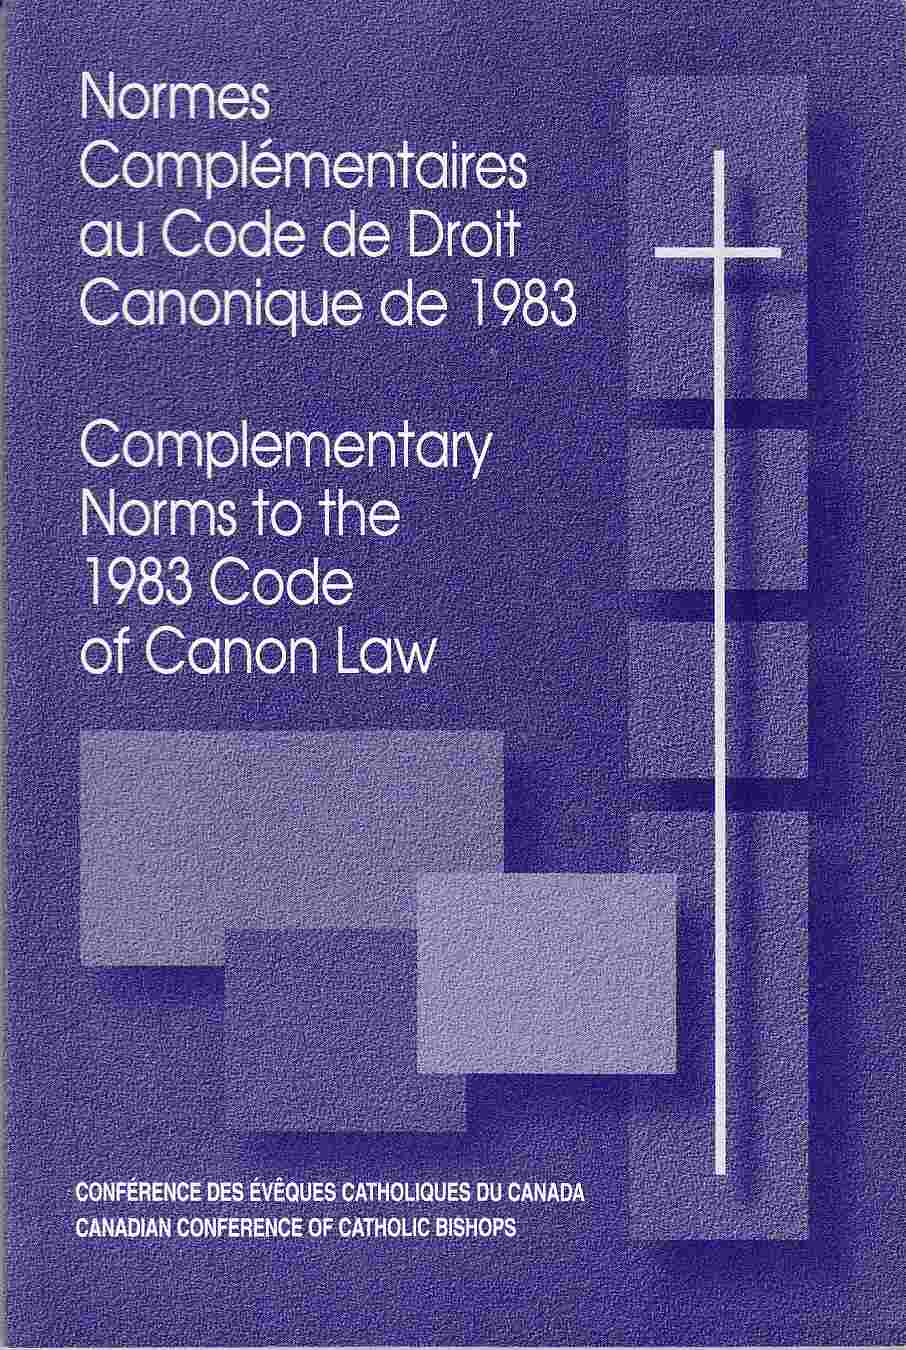 Image for Normes Complementaires La Code de Droit Canonique de 1983 / Complementary Norms to the 1983 Code of Canon Law